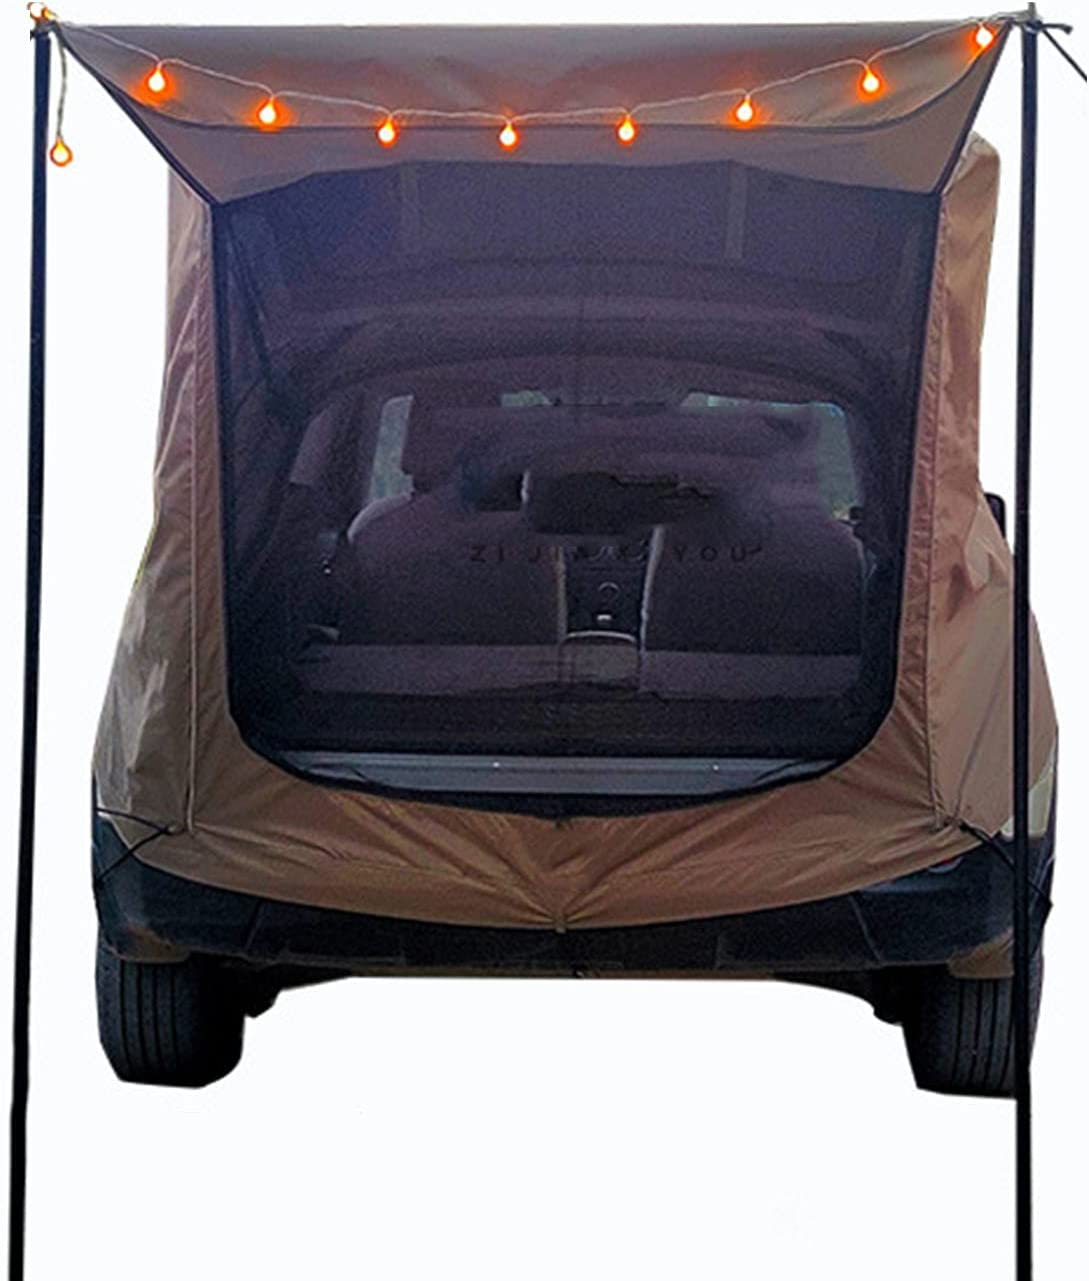 LHQ-HQ Car Truck All items free shipping Tent SUV Tail Topics on TV Universal Portable Extension